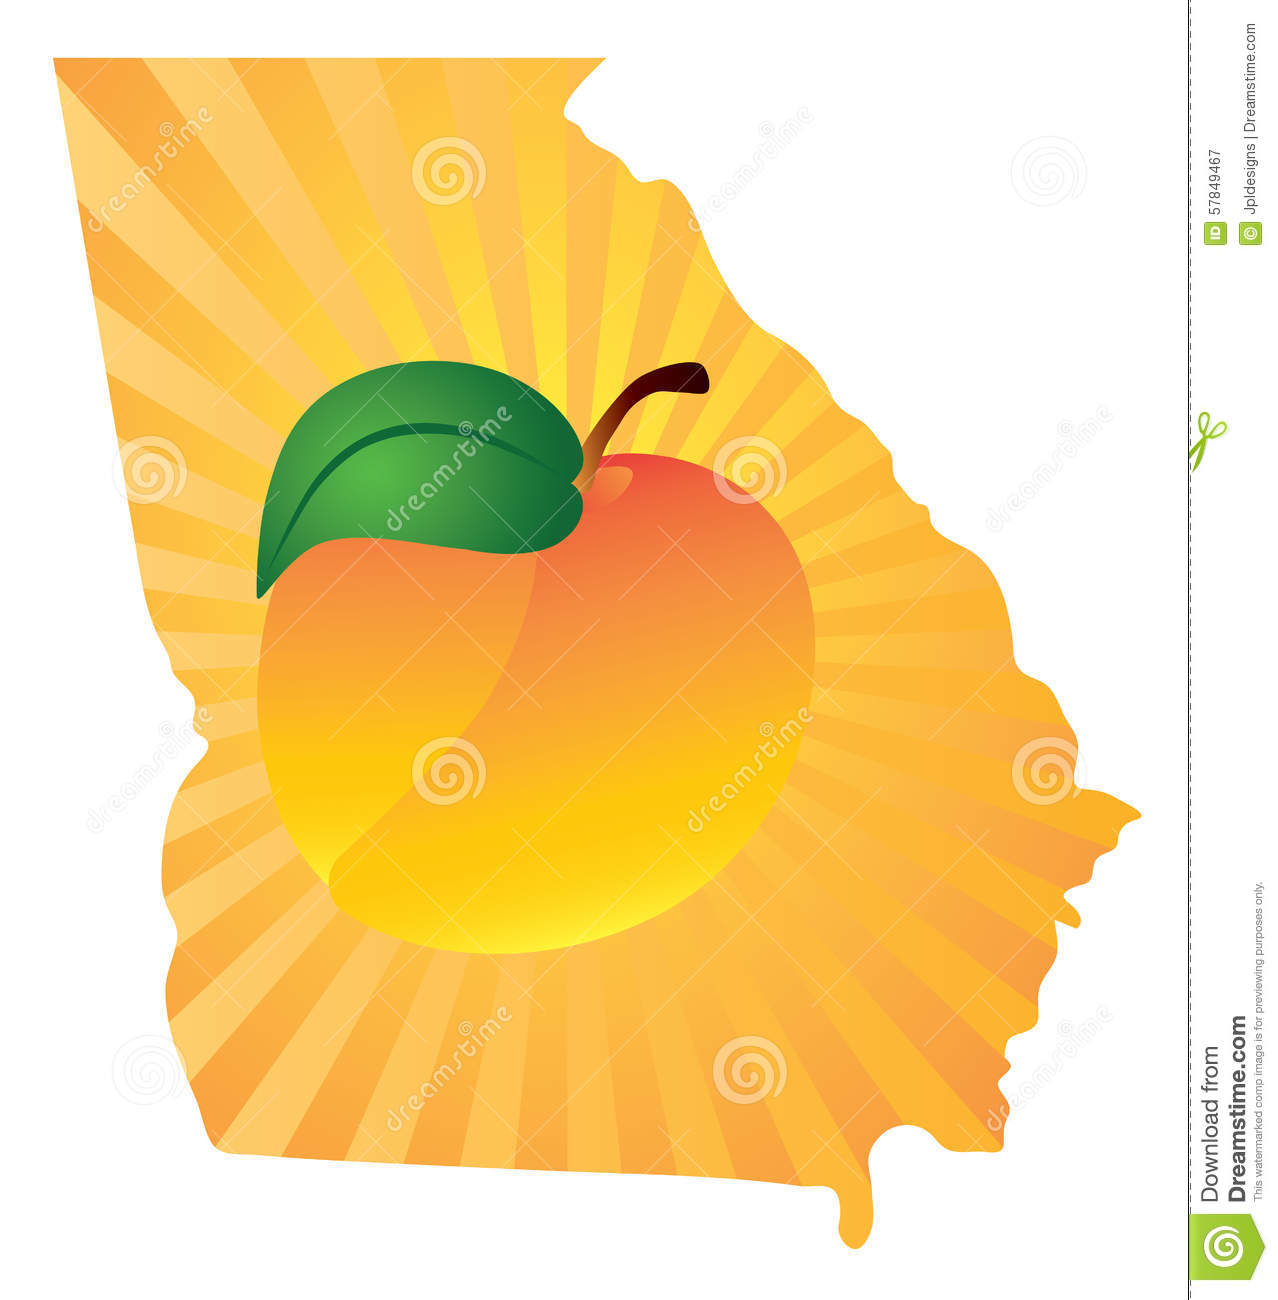 Georgia State With Peach Color Vector Illustration Stock Vector - Georgia map vector free download